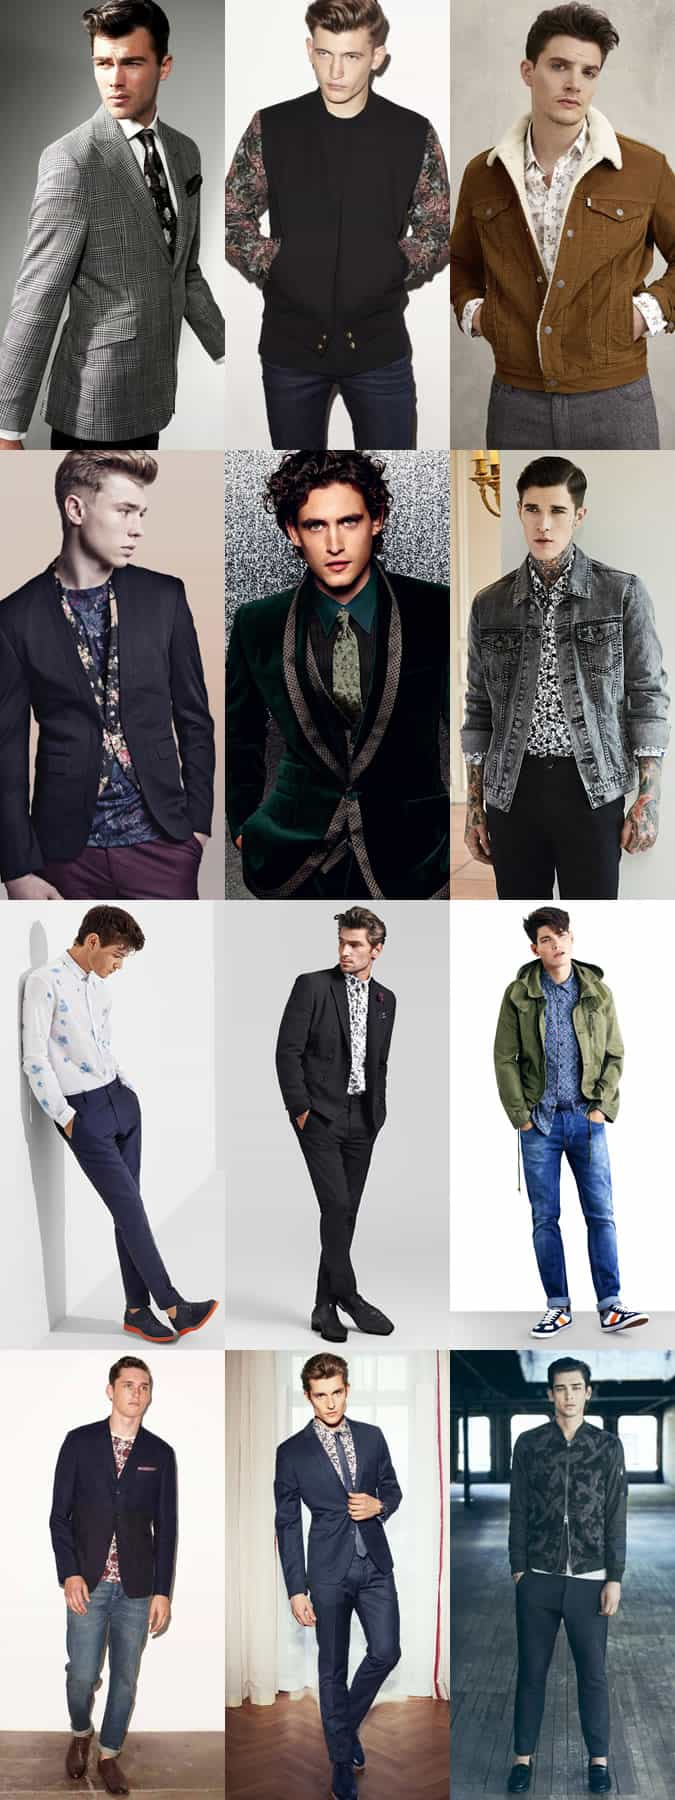 Men's Autumn/Winter Floral Print - Subtle Outfit Inspiration Lookbook